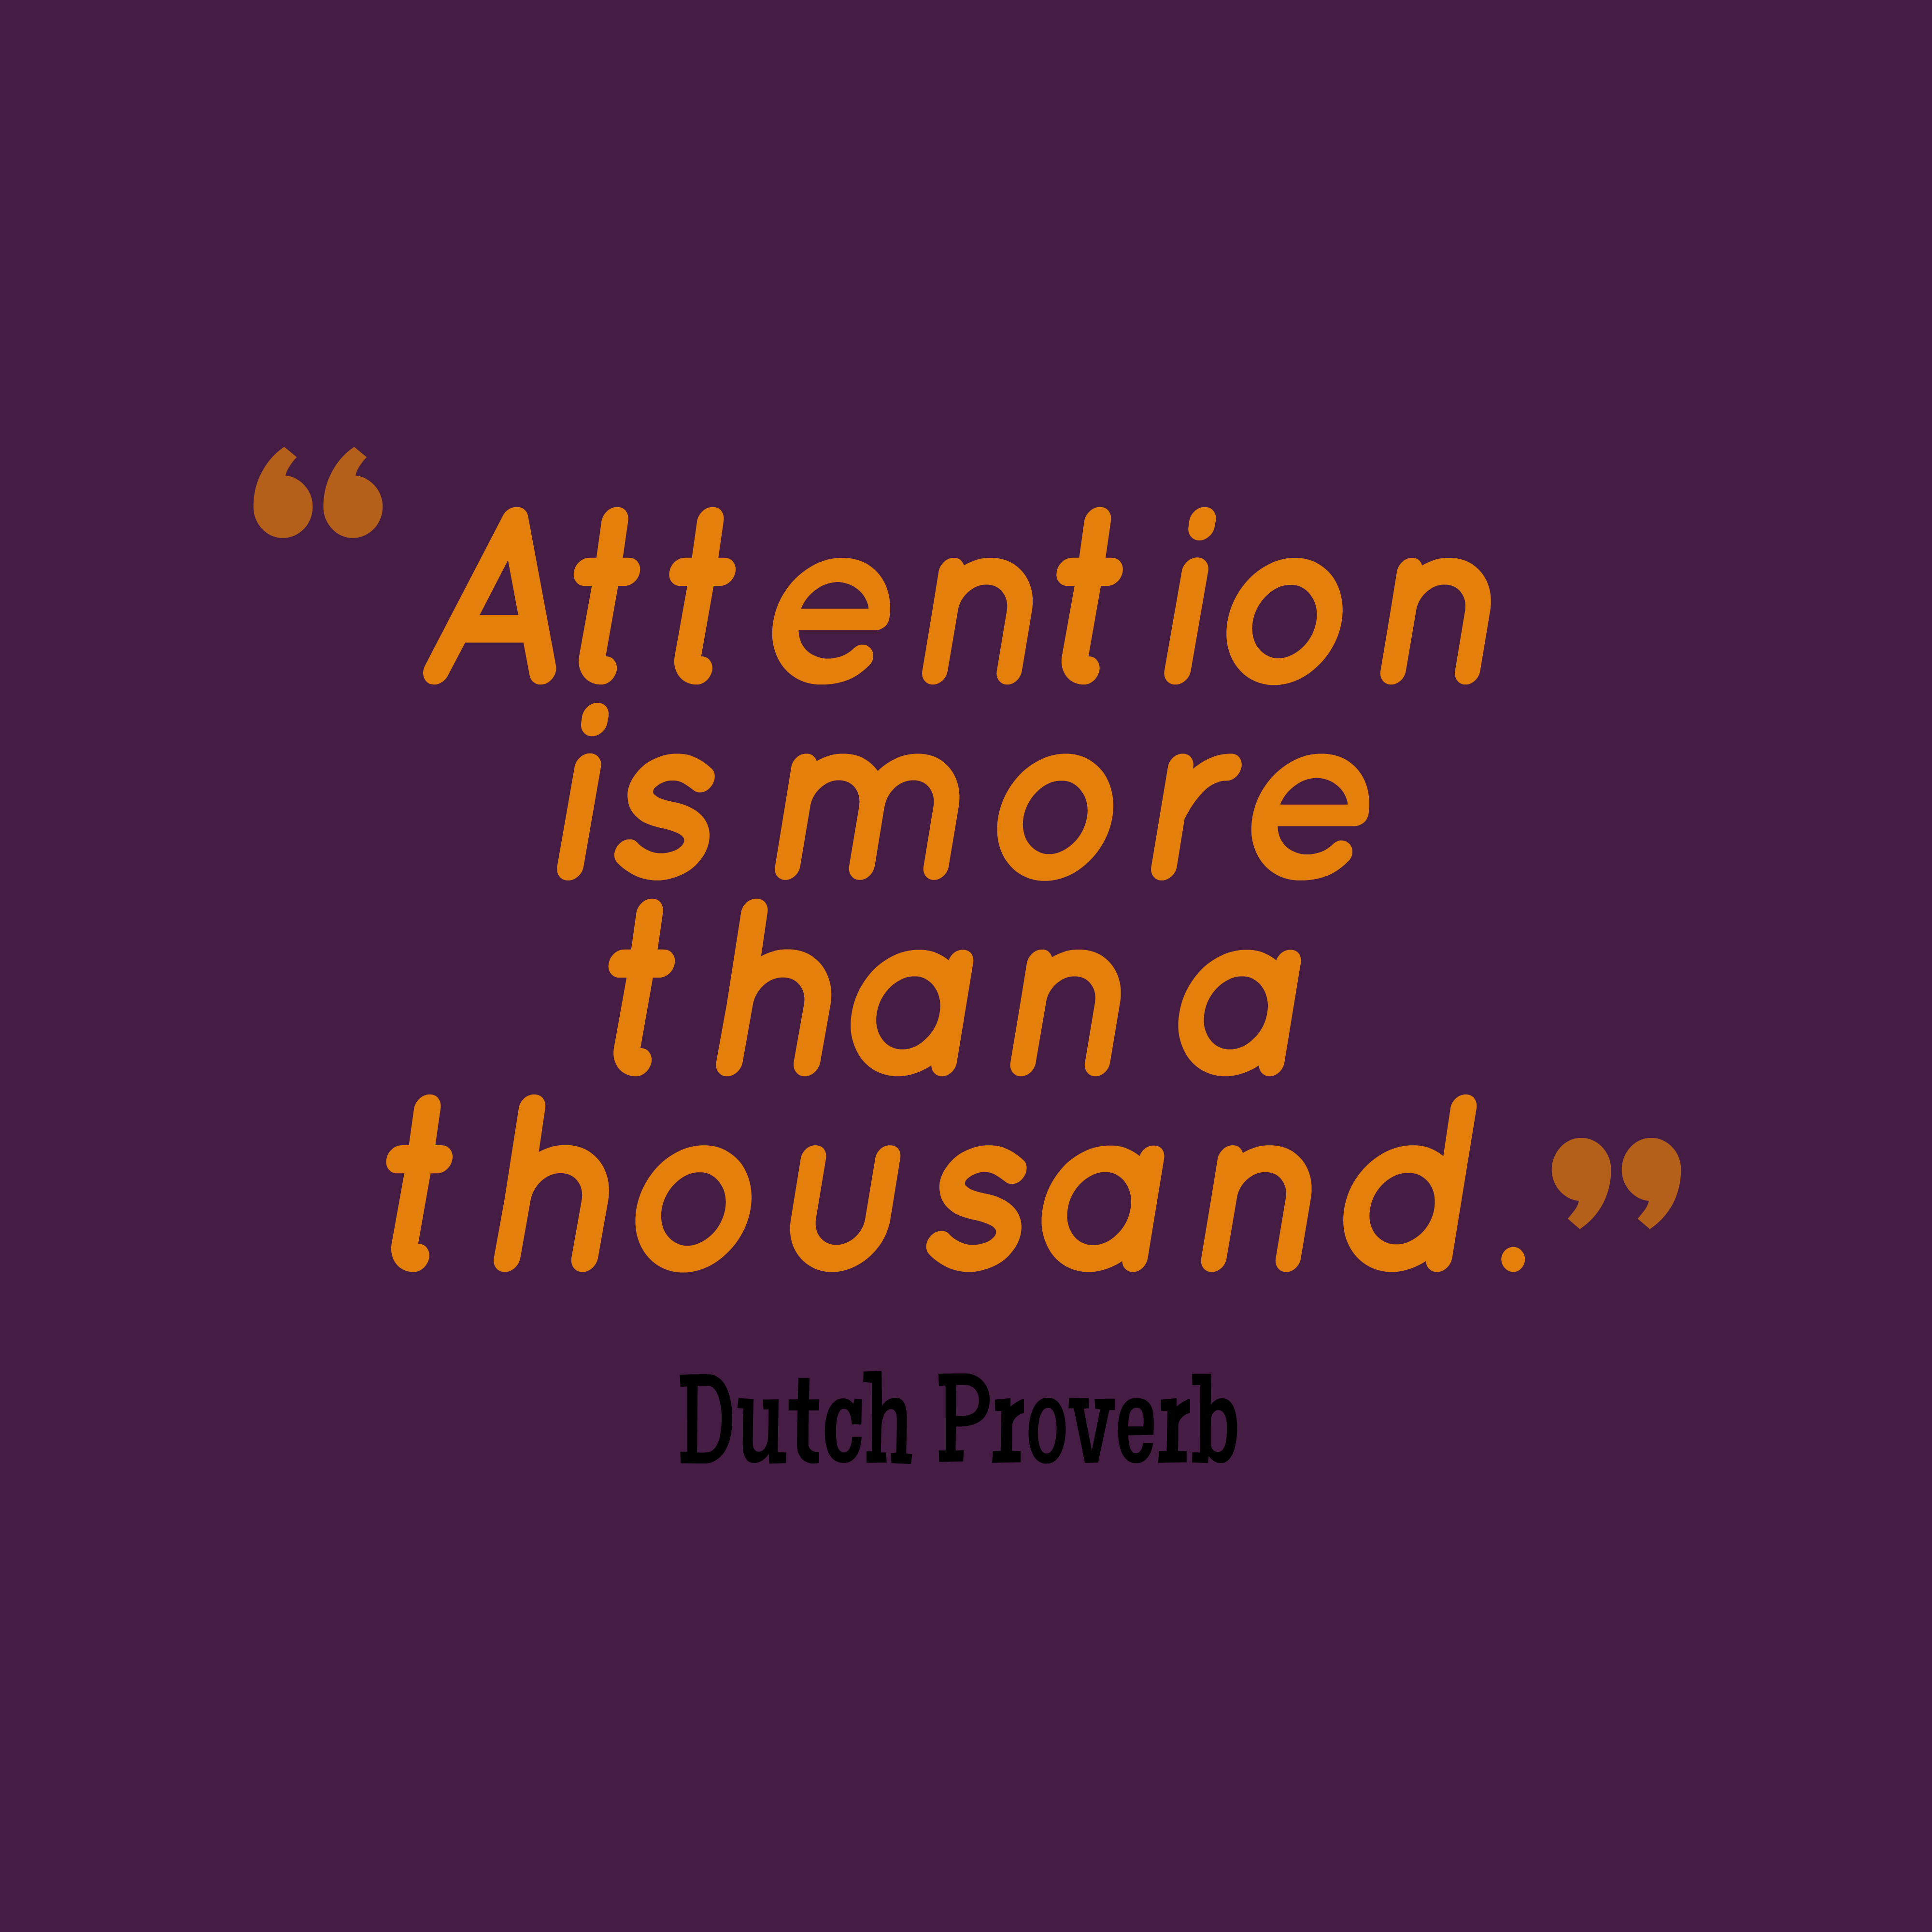 Dutch wisdom quote about attention.